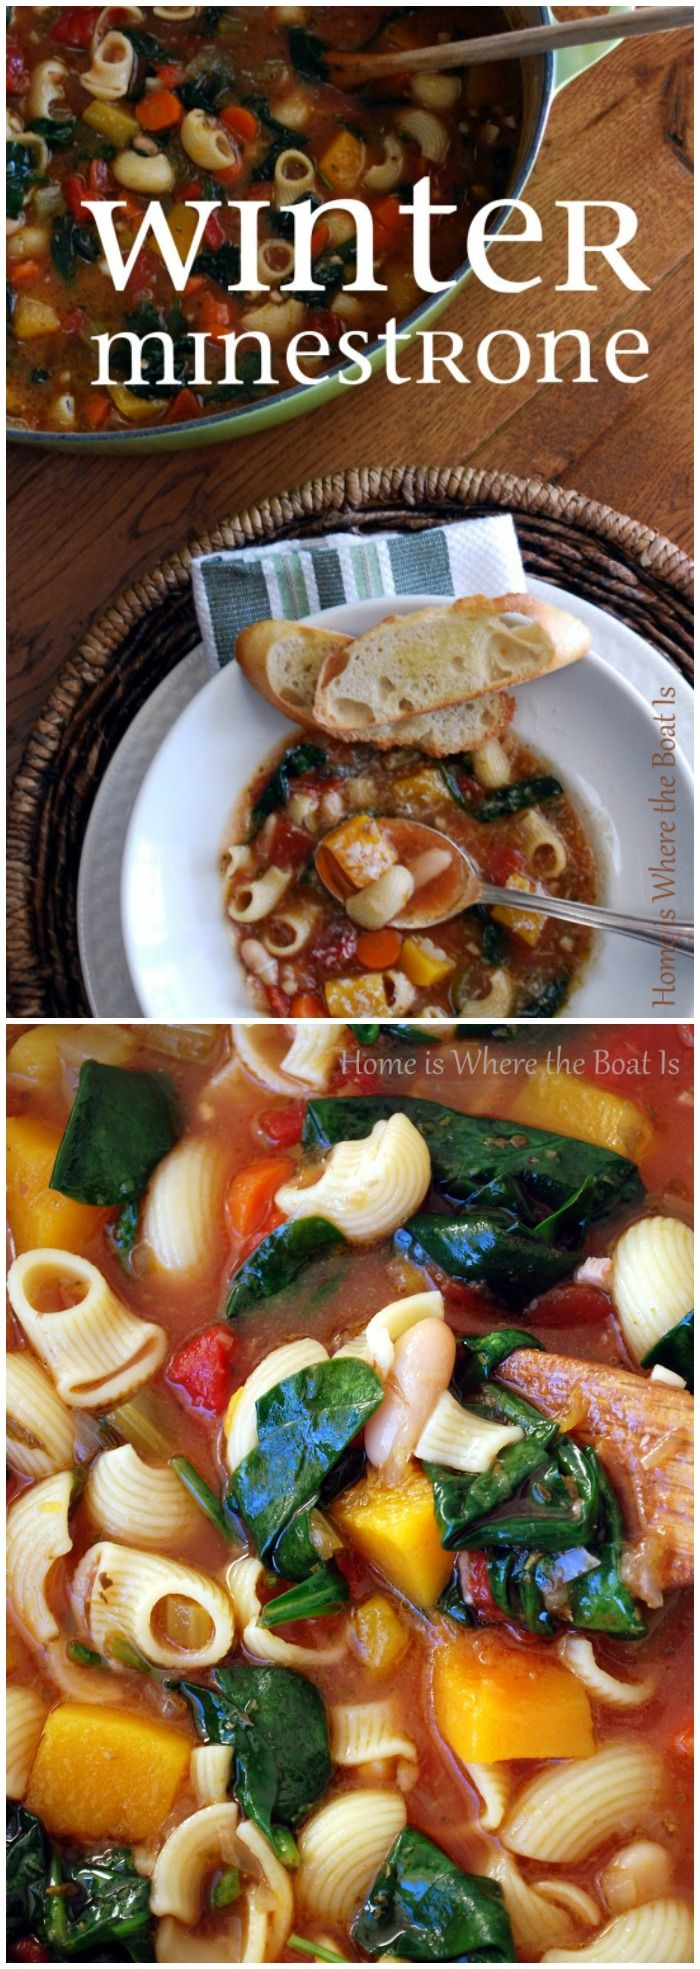 Ina Garten's Winter Minestrone! Foolproof, hearty, comforting, and the perfect soup for a cold winter day!